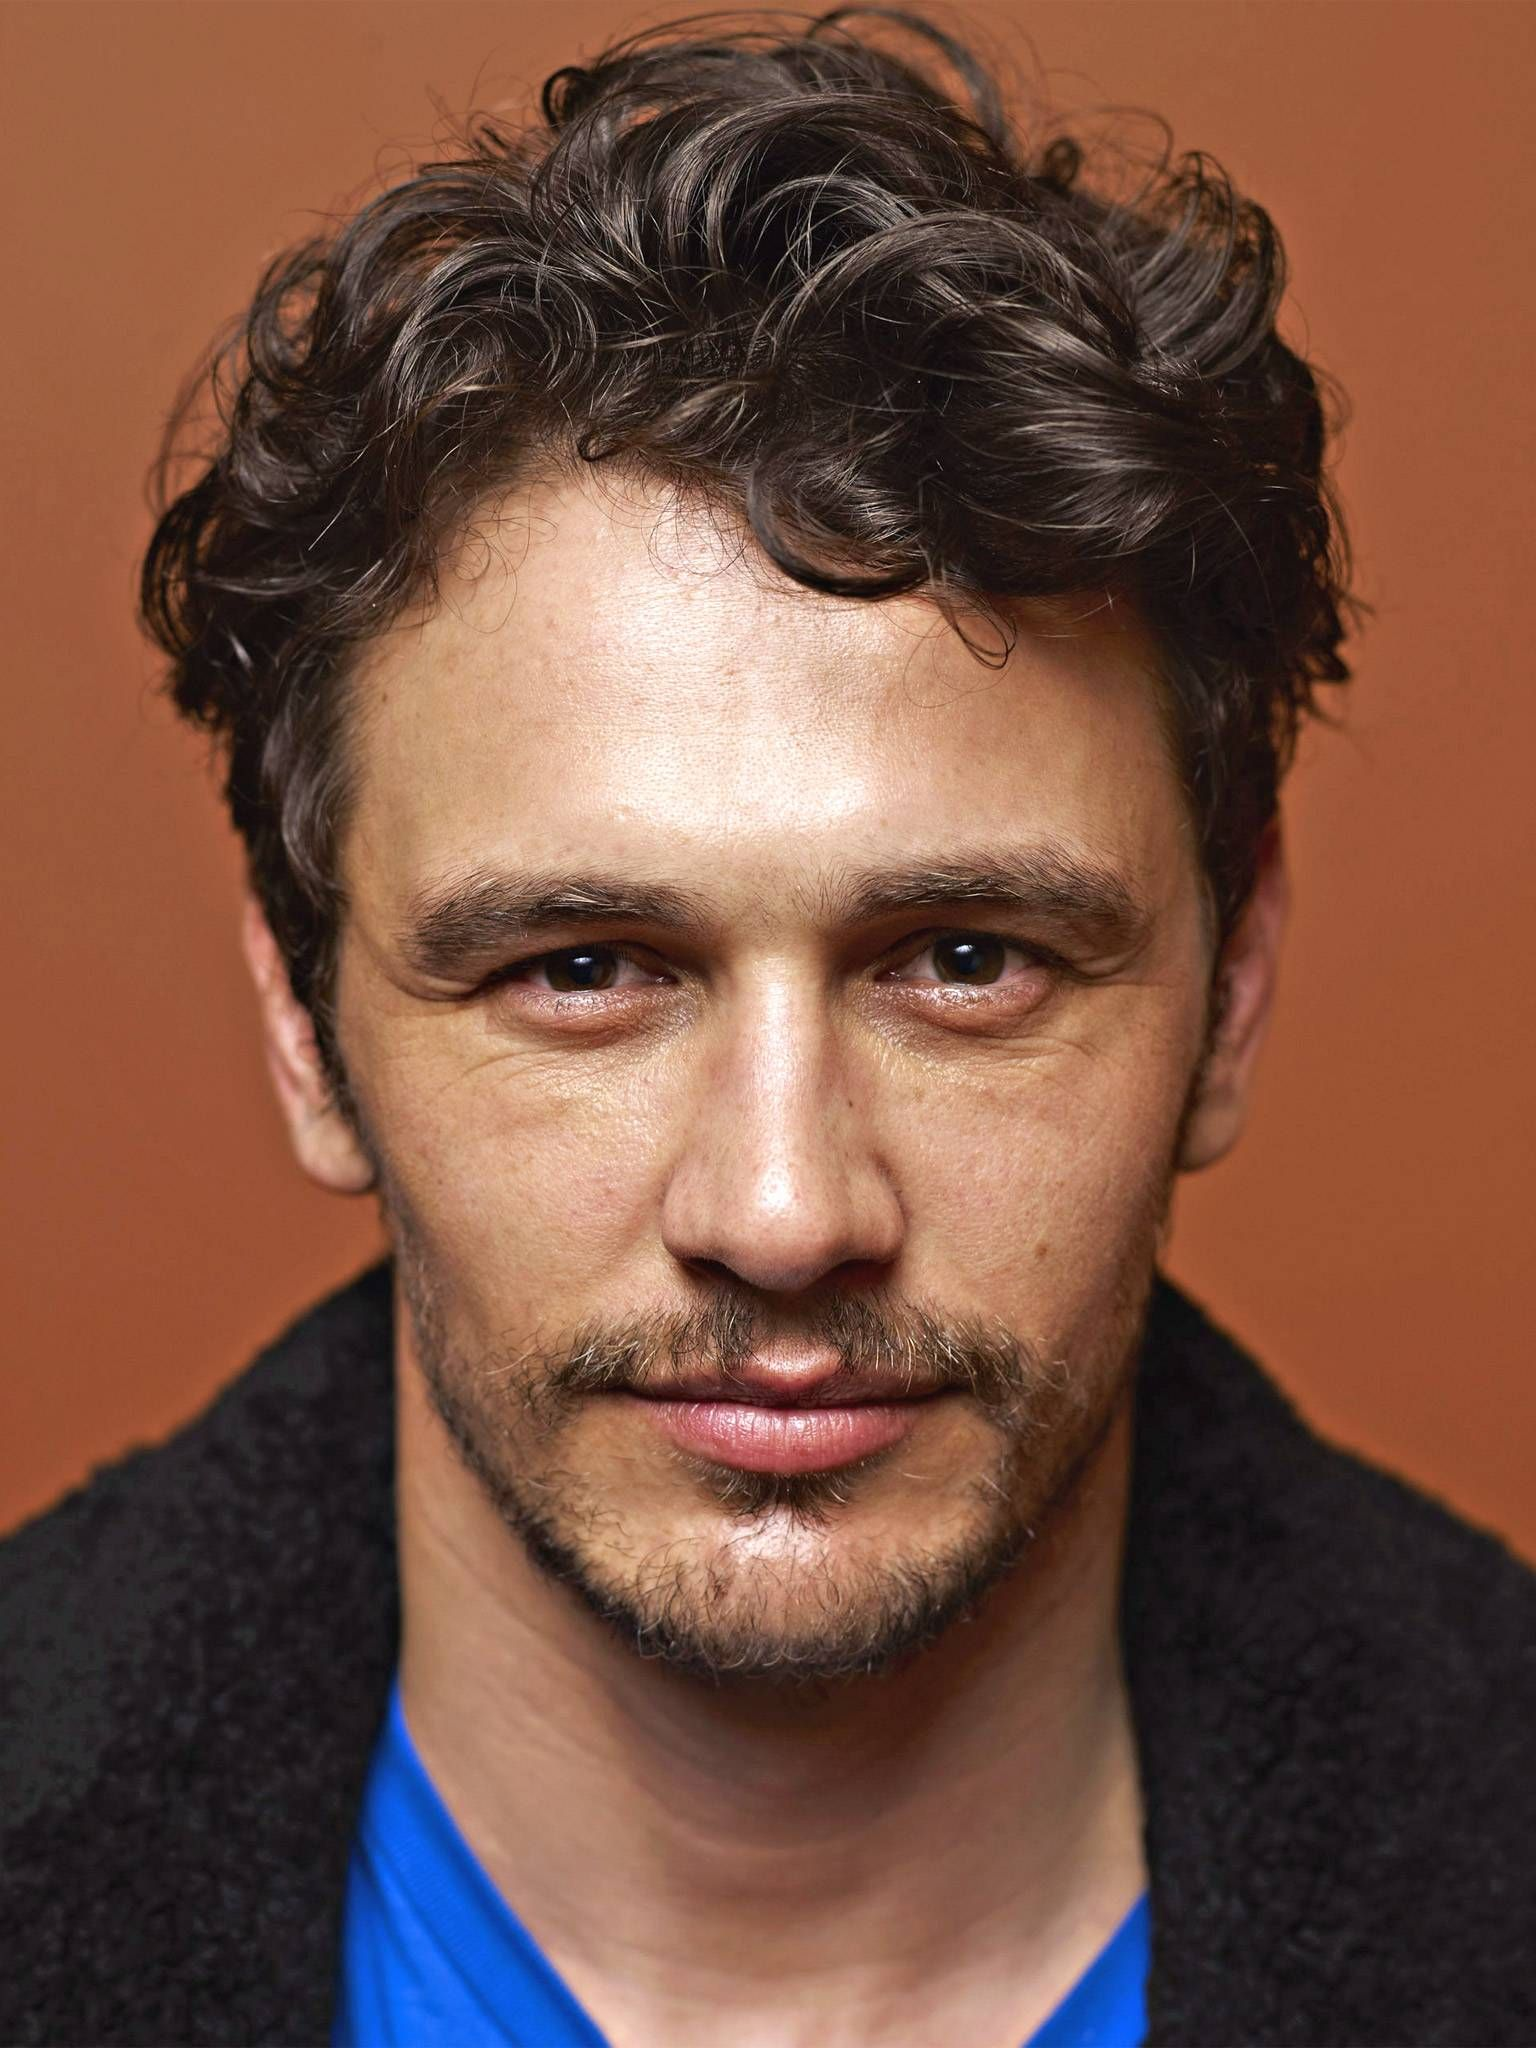 james franco tumblr